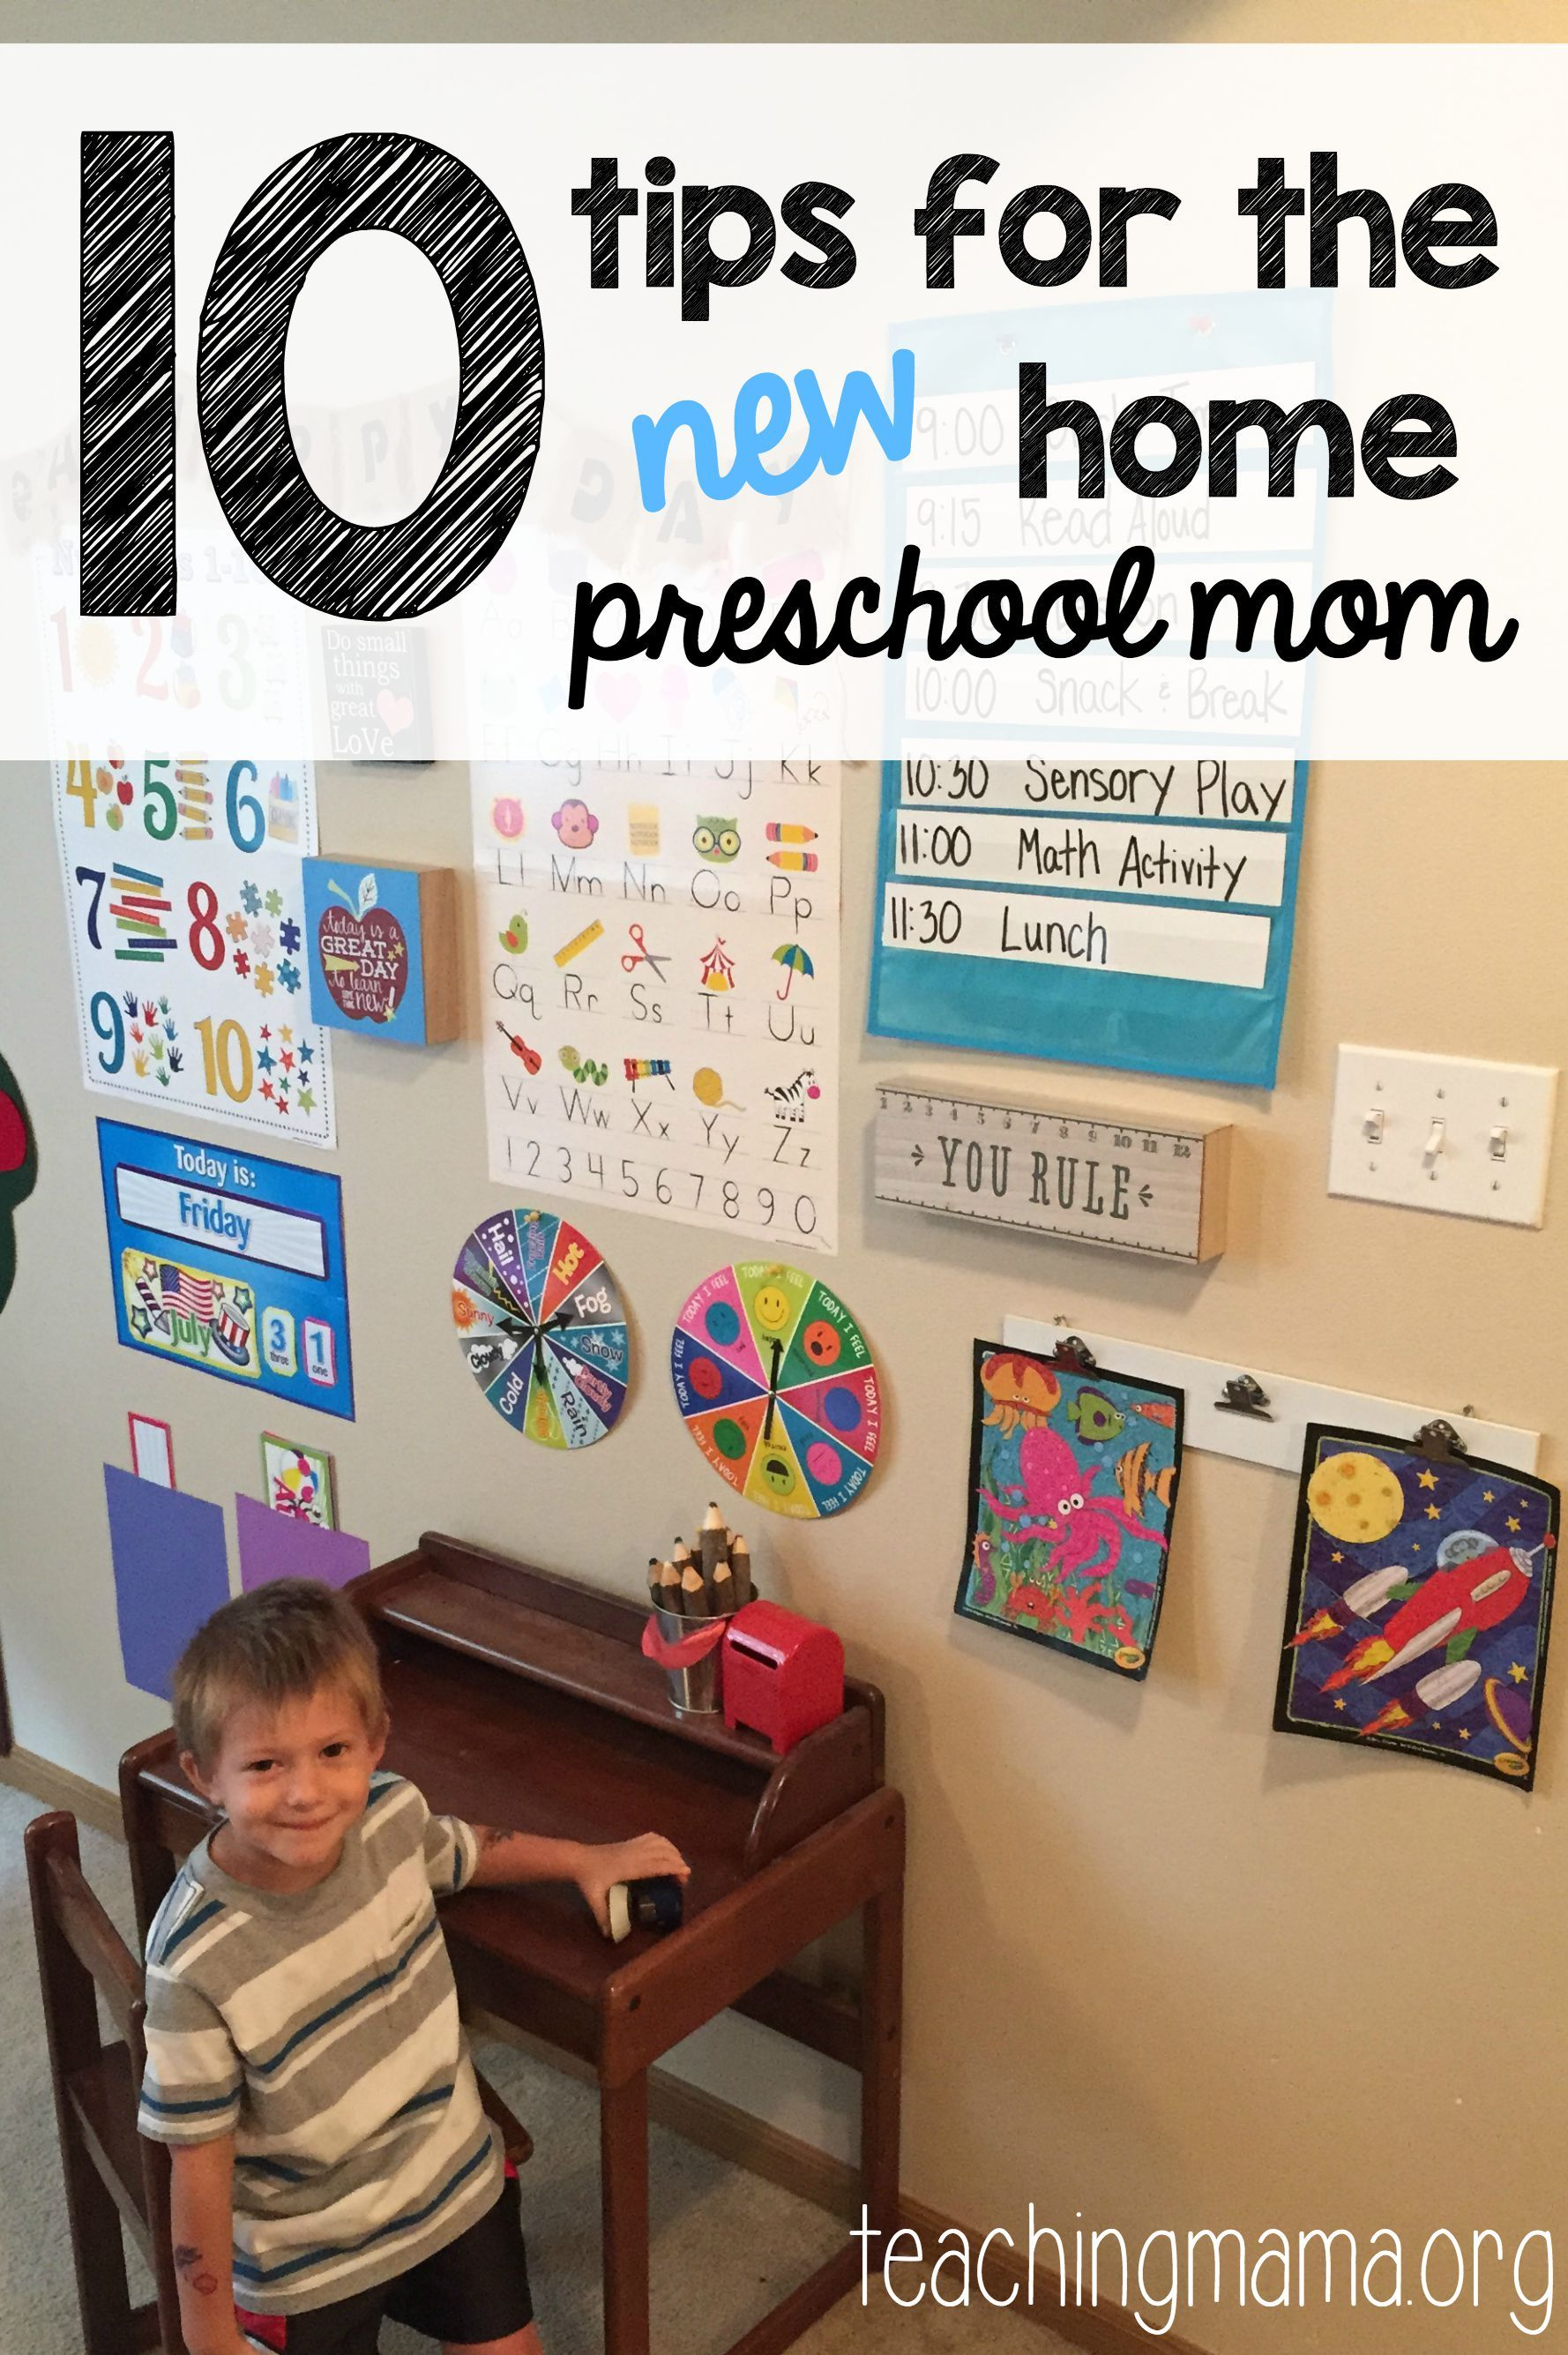 10 Tips for the New Home Preschool Mom Preschool prep